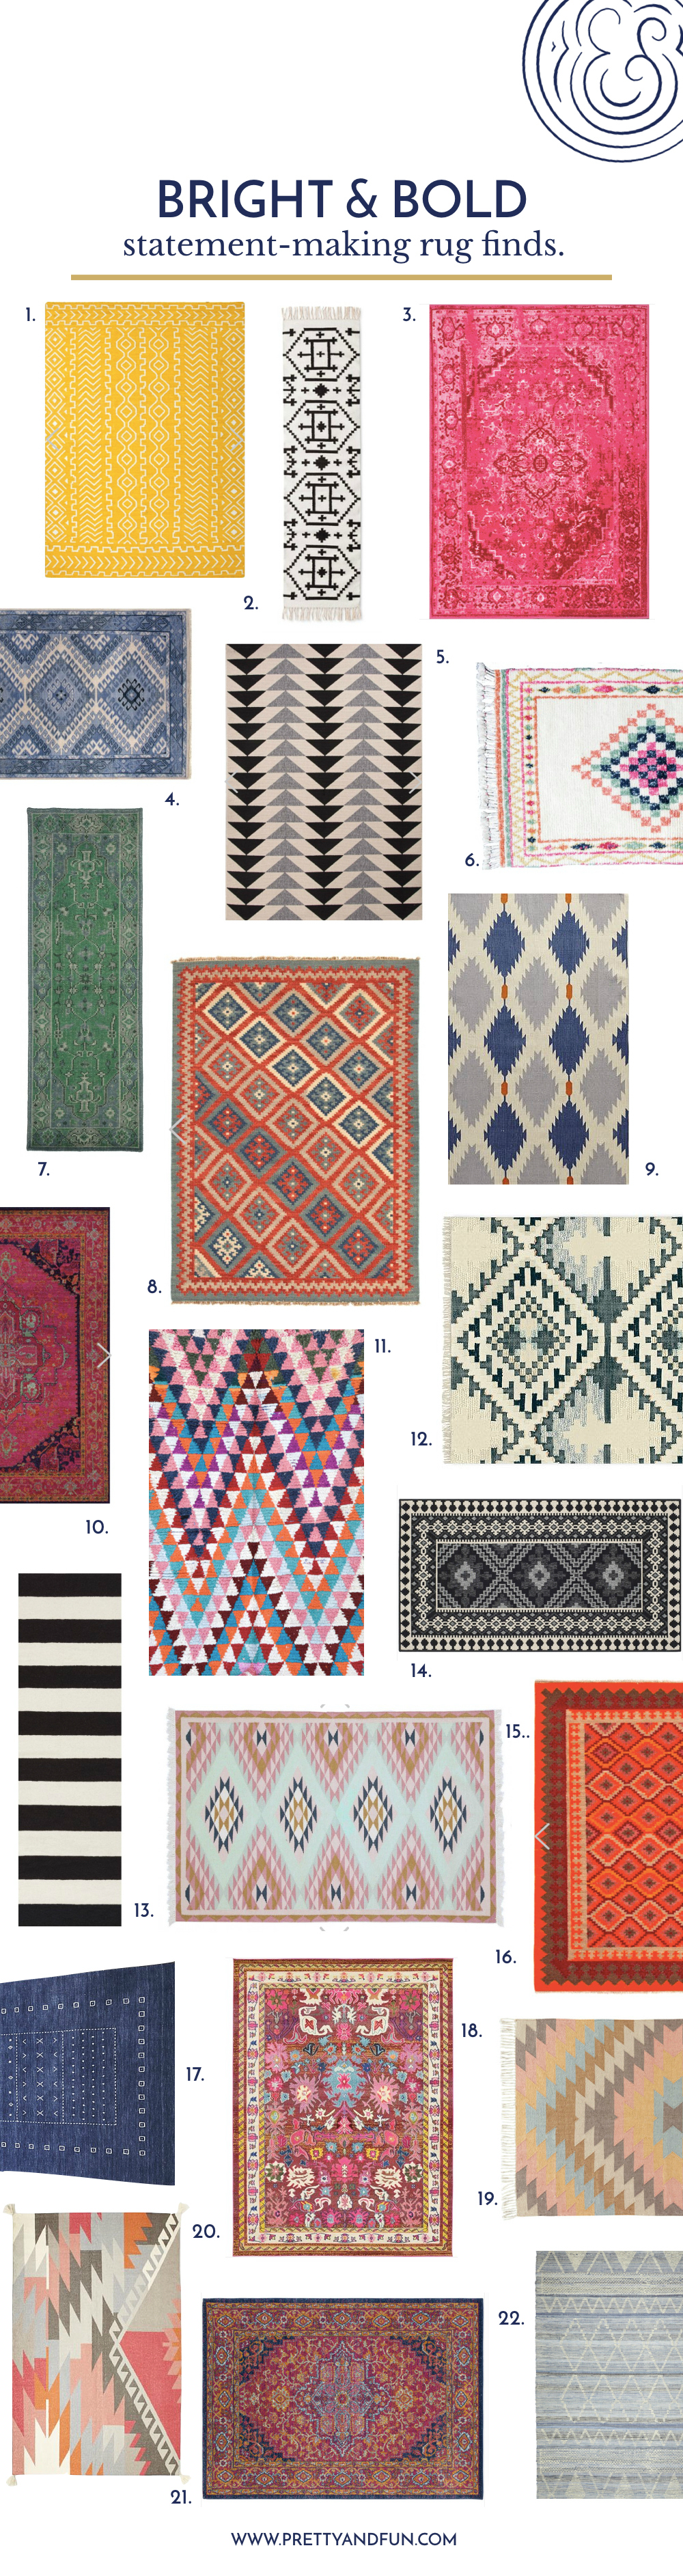 22 Bold Rugs That Make a Statement.